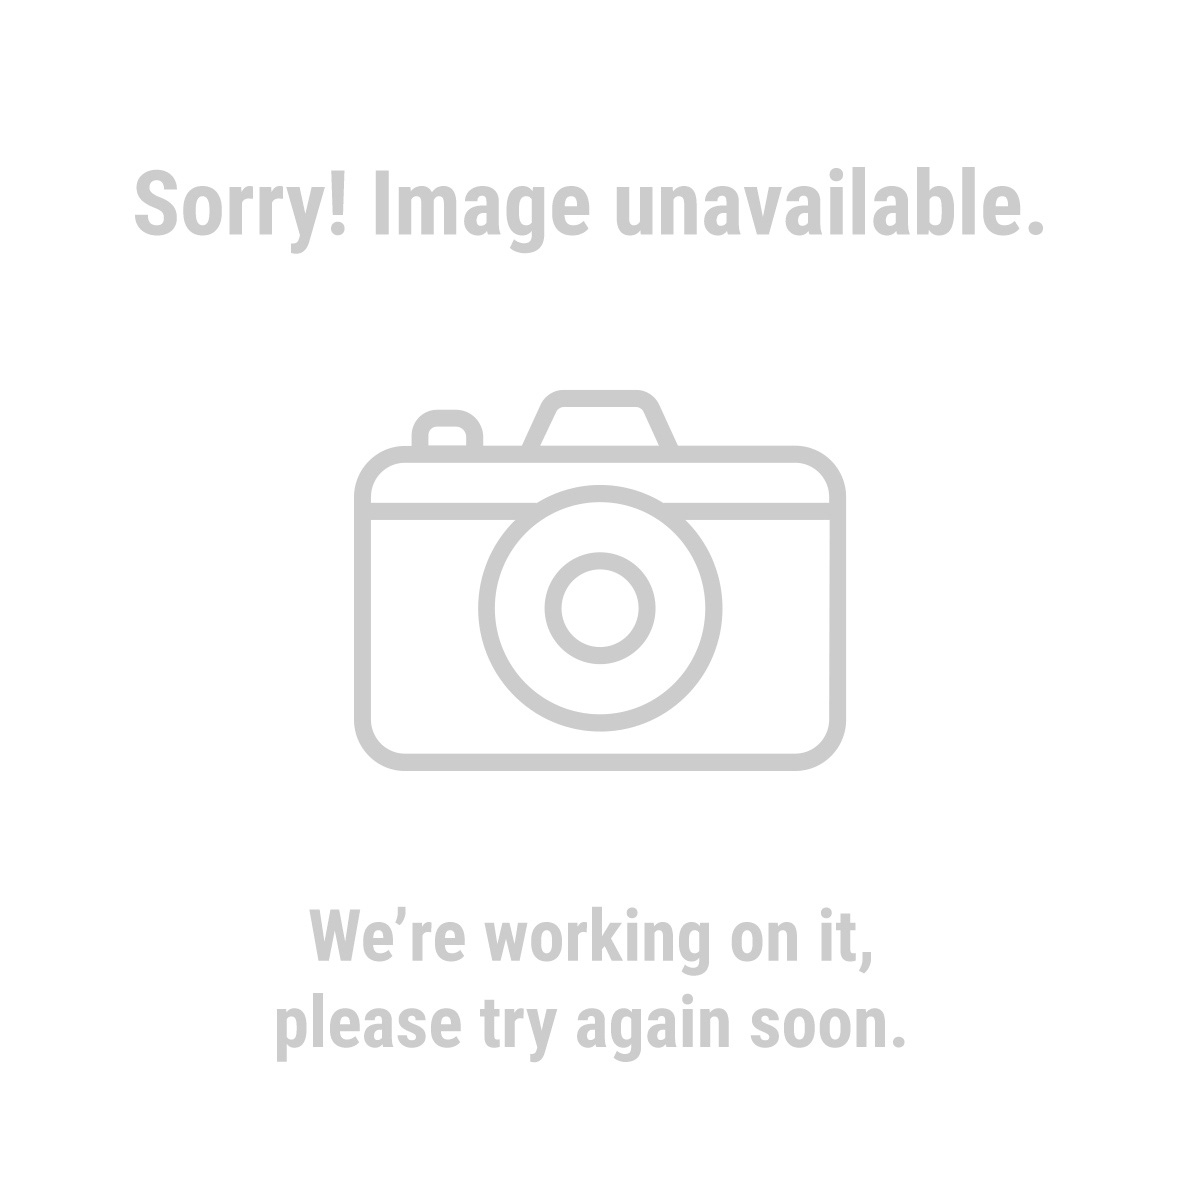 Haul-Master® 63102 Submersible Trailer Light - Right Side